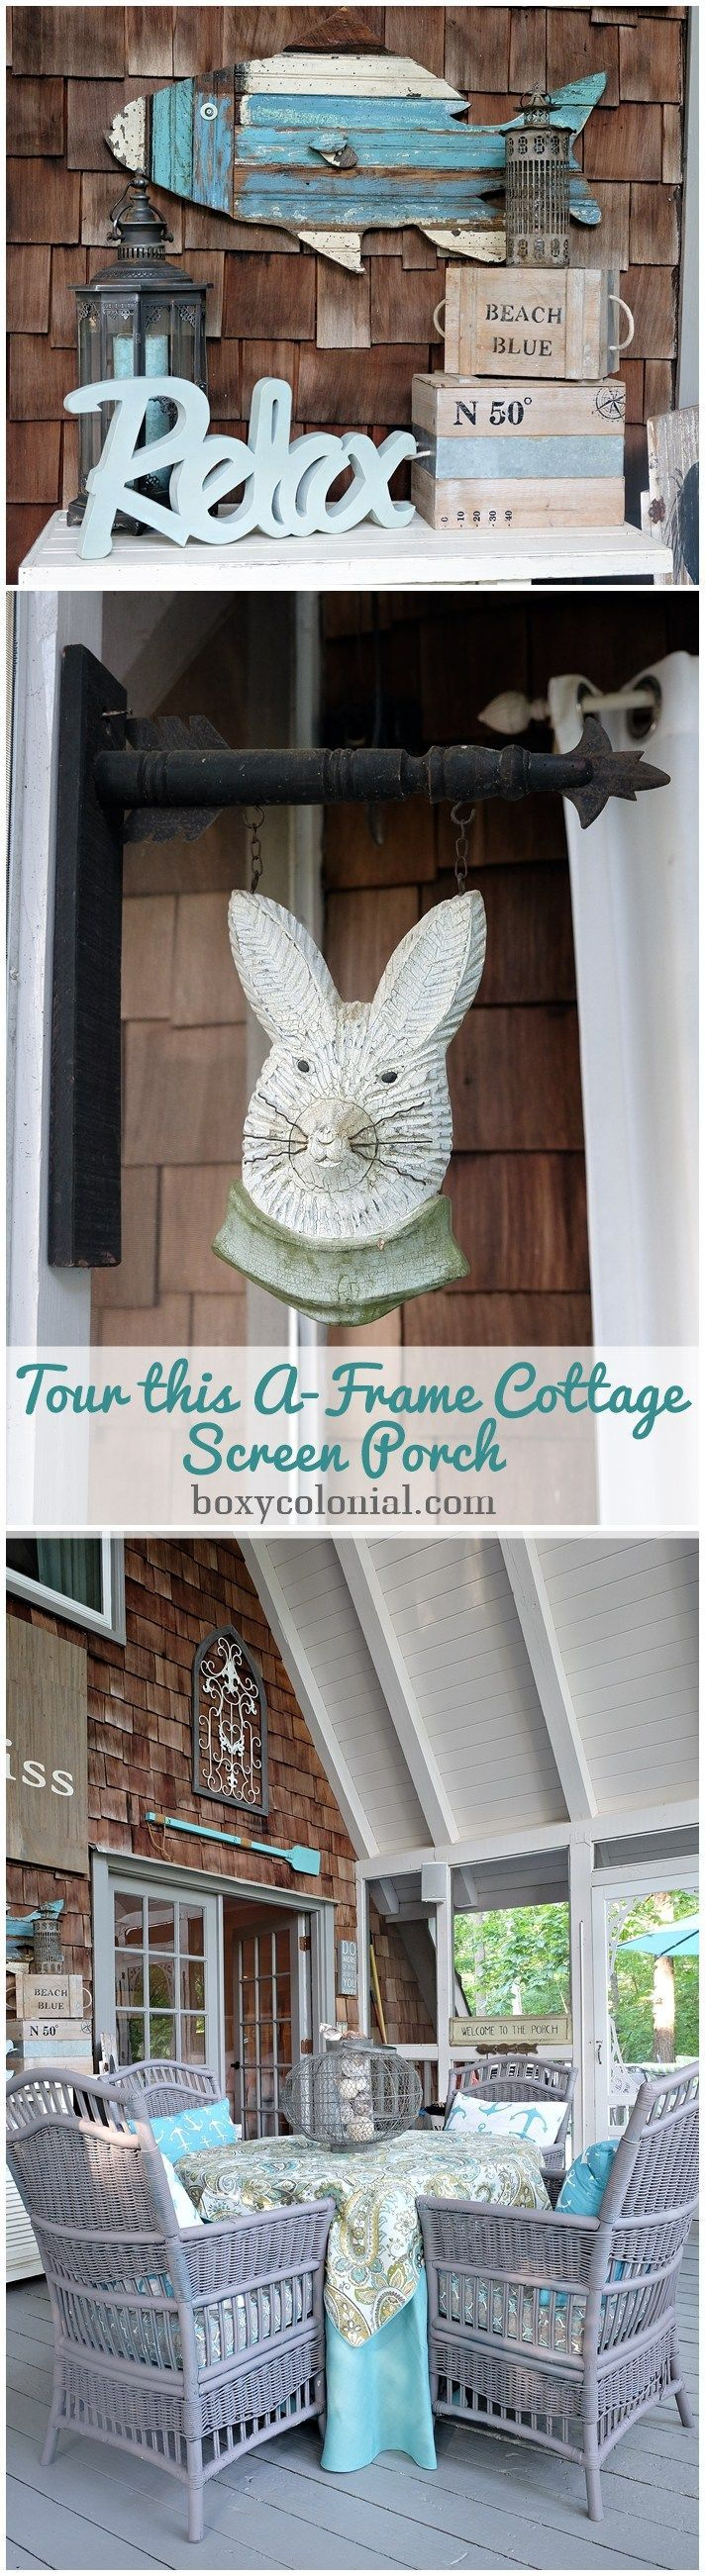 My Mom's A-frame House Tour, Part 3: The Screen Porch -